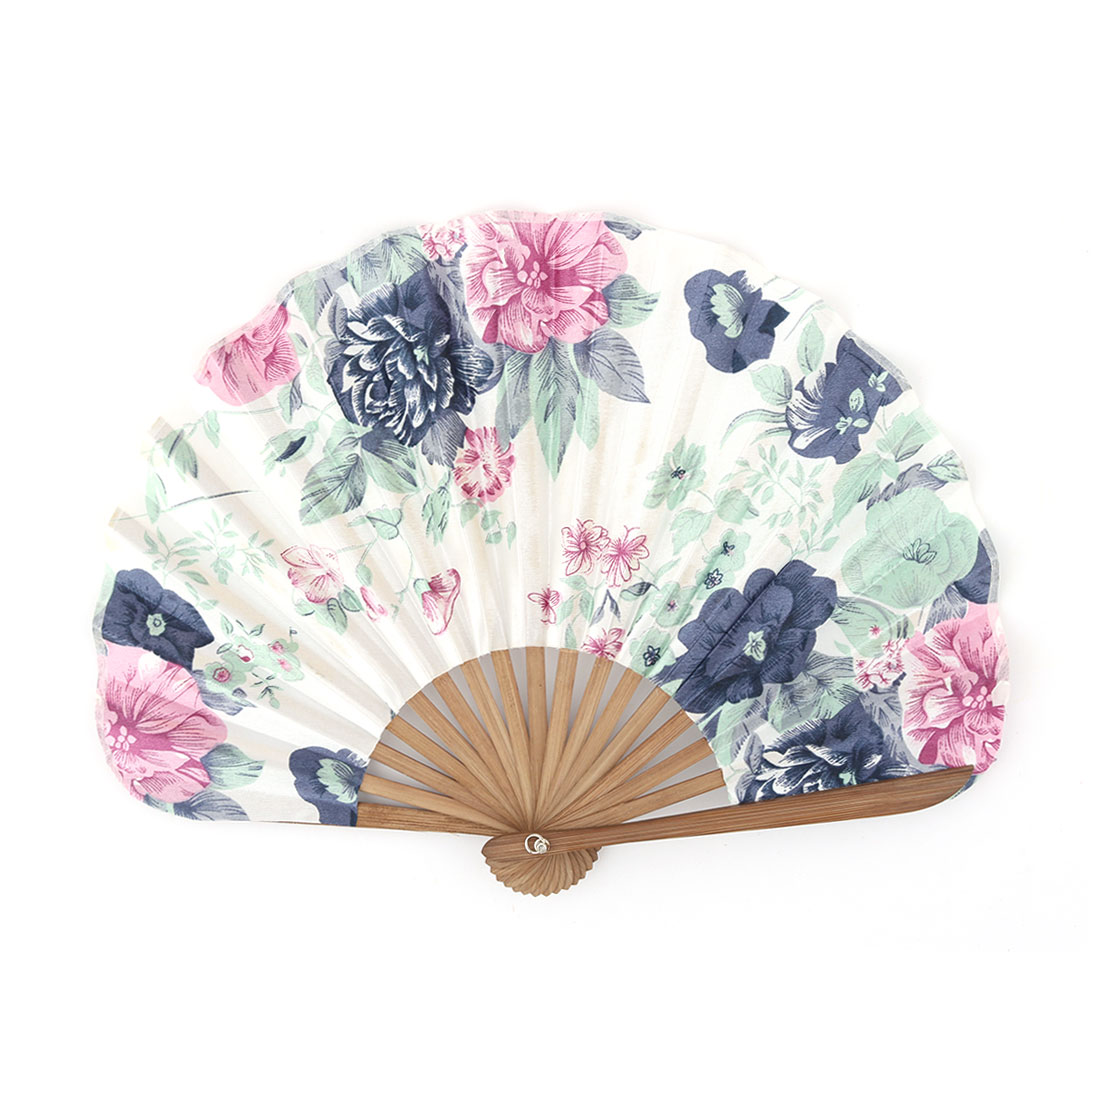 Dance Party Bamboo Frame Peony Printed Ornament Handheld Foldable Hand Fan